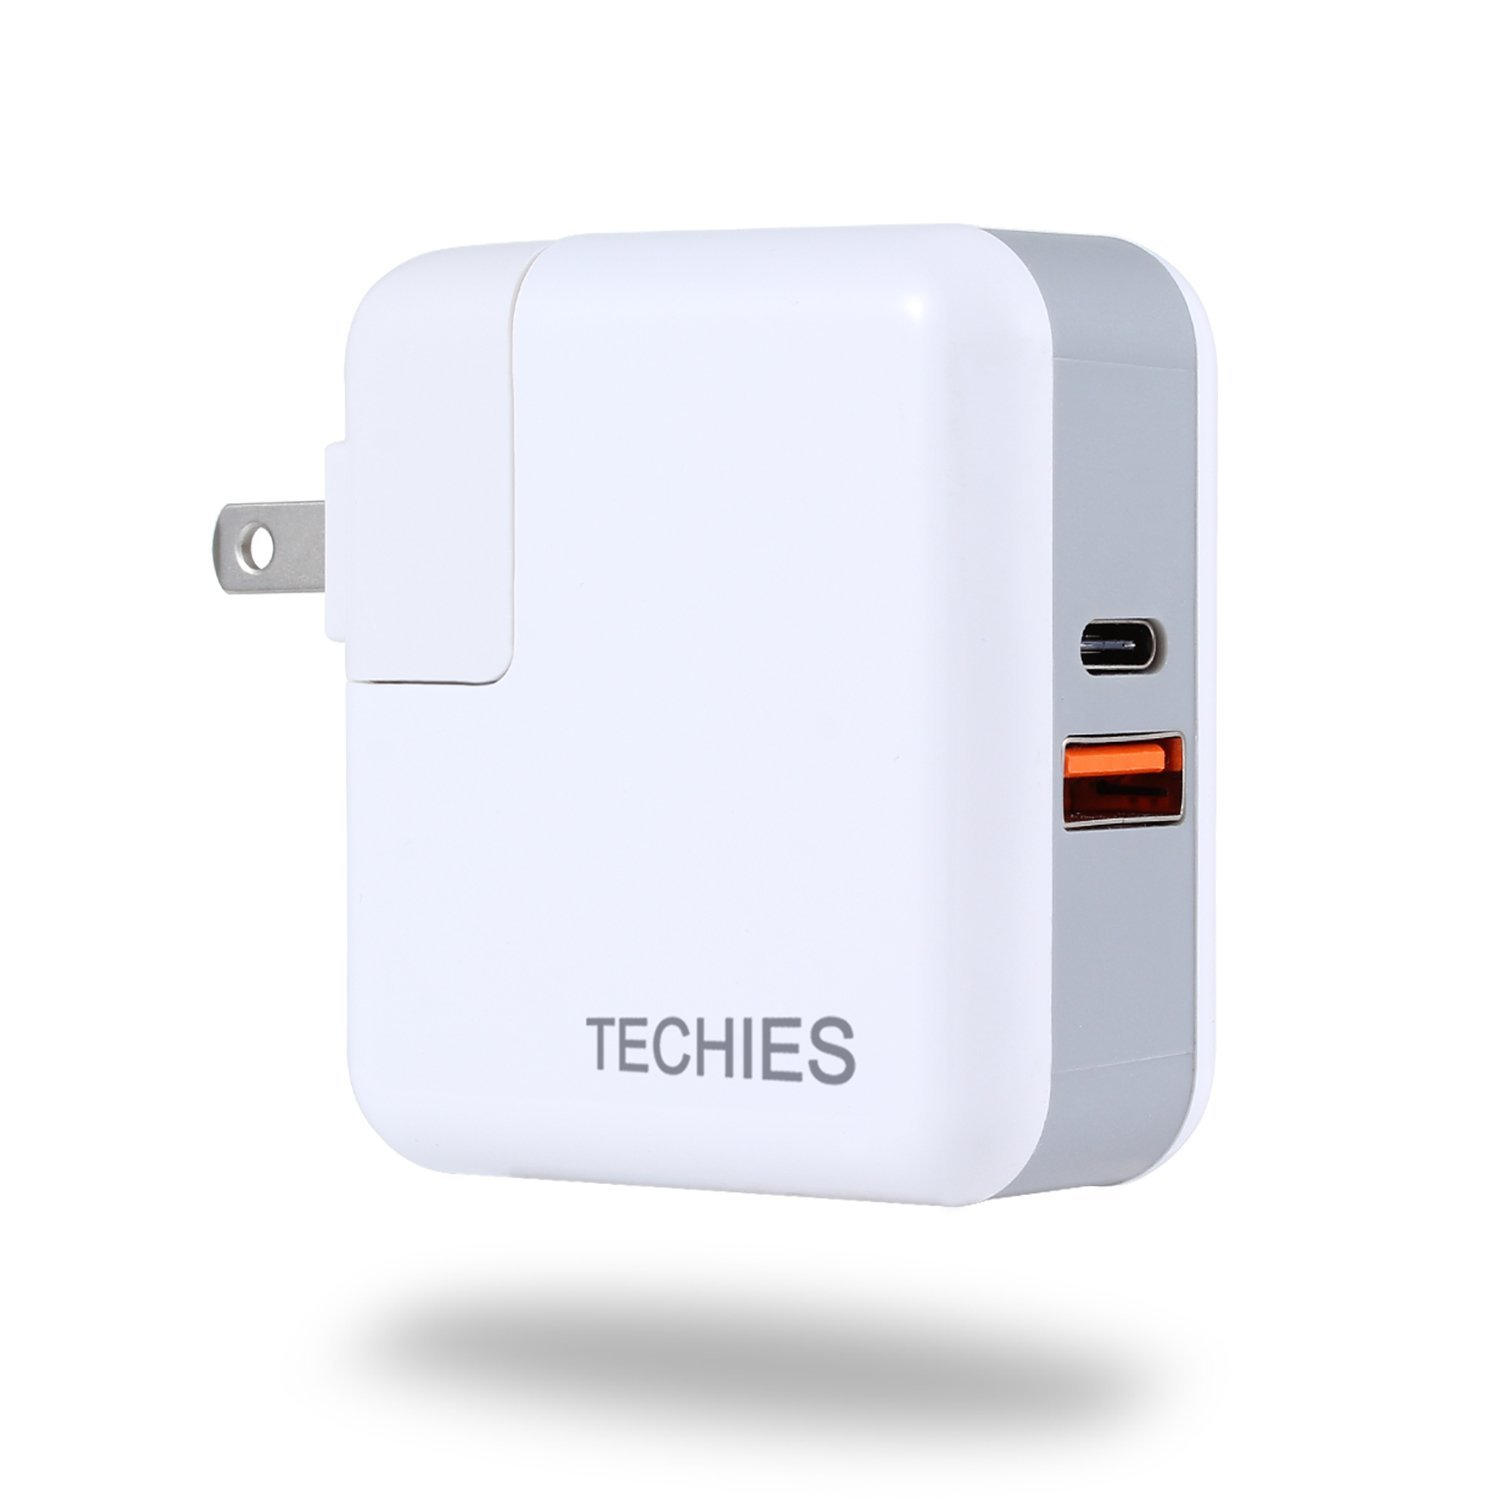 For Fast Charging iPhone X, 8, 8 Plus 50% Battery In 30 Mins., TECHIES 29W PD Power Delivery USB Type-C/A Wall/Travel Adapter; Also Quick Charges Android Phones 4 Times Faster Than Non-QC 3.0 Charger